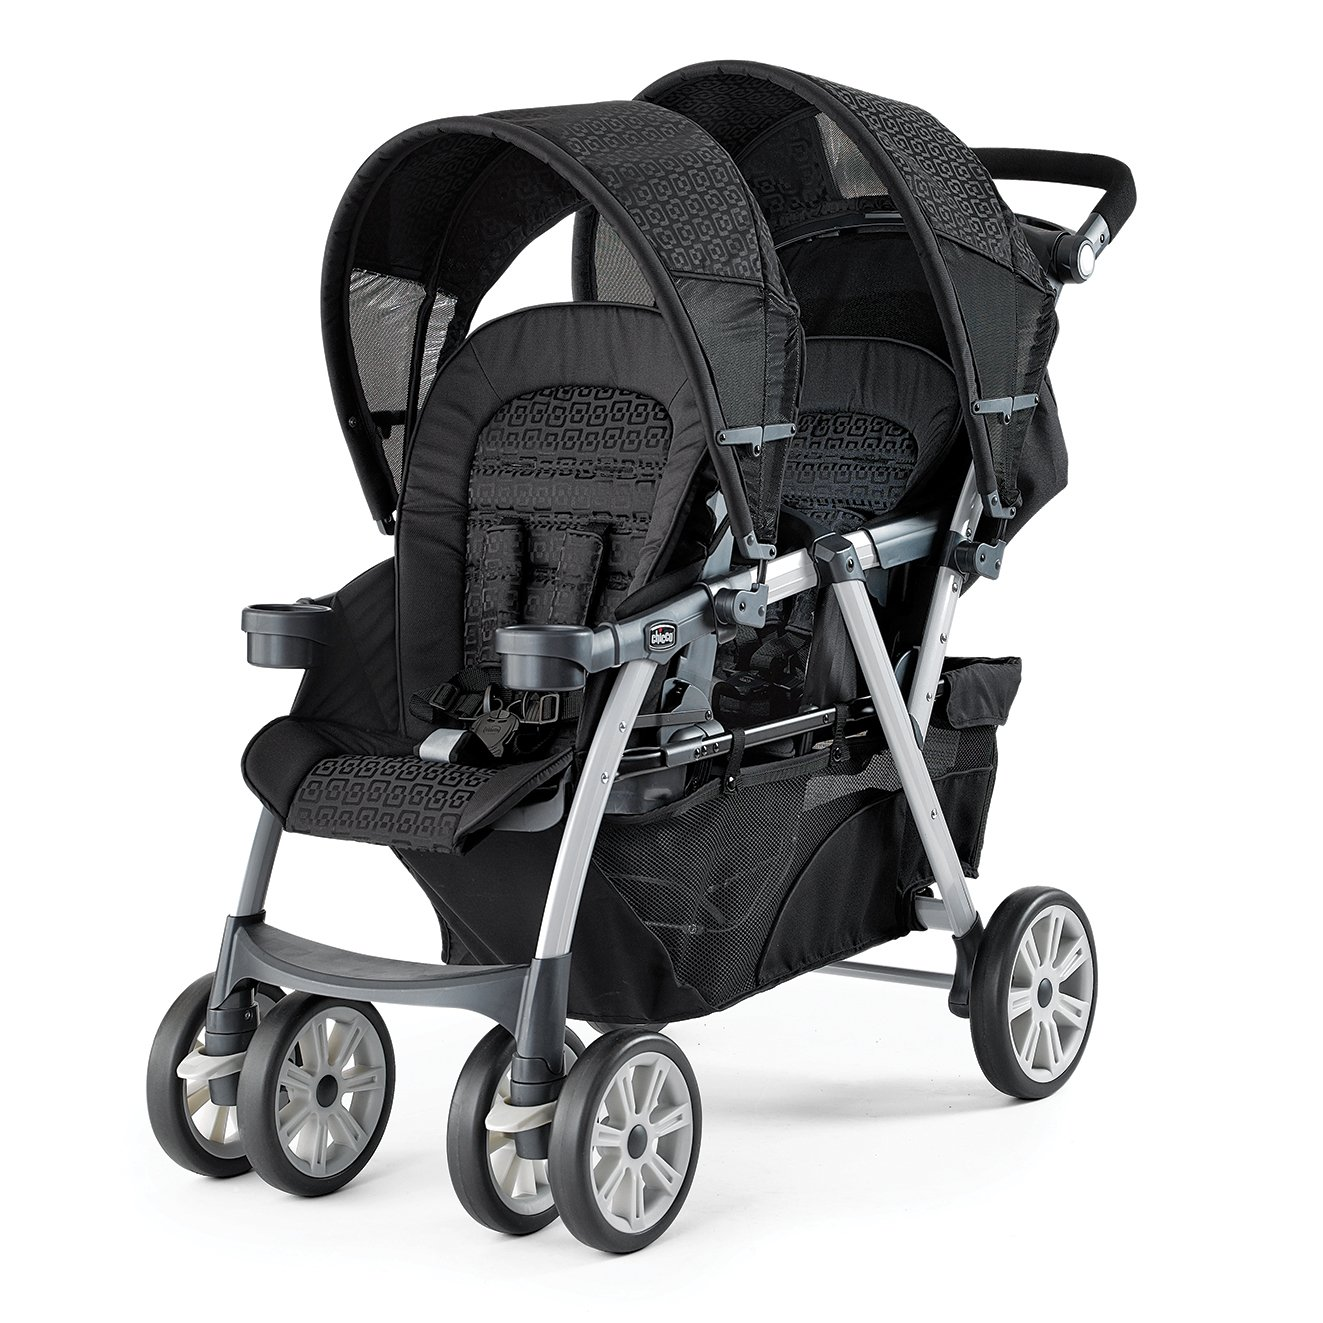 Top 7 Best Tandem Strollers Reviews in 2020 2